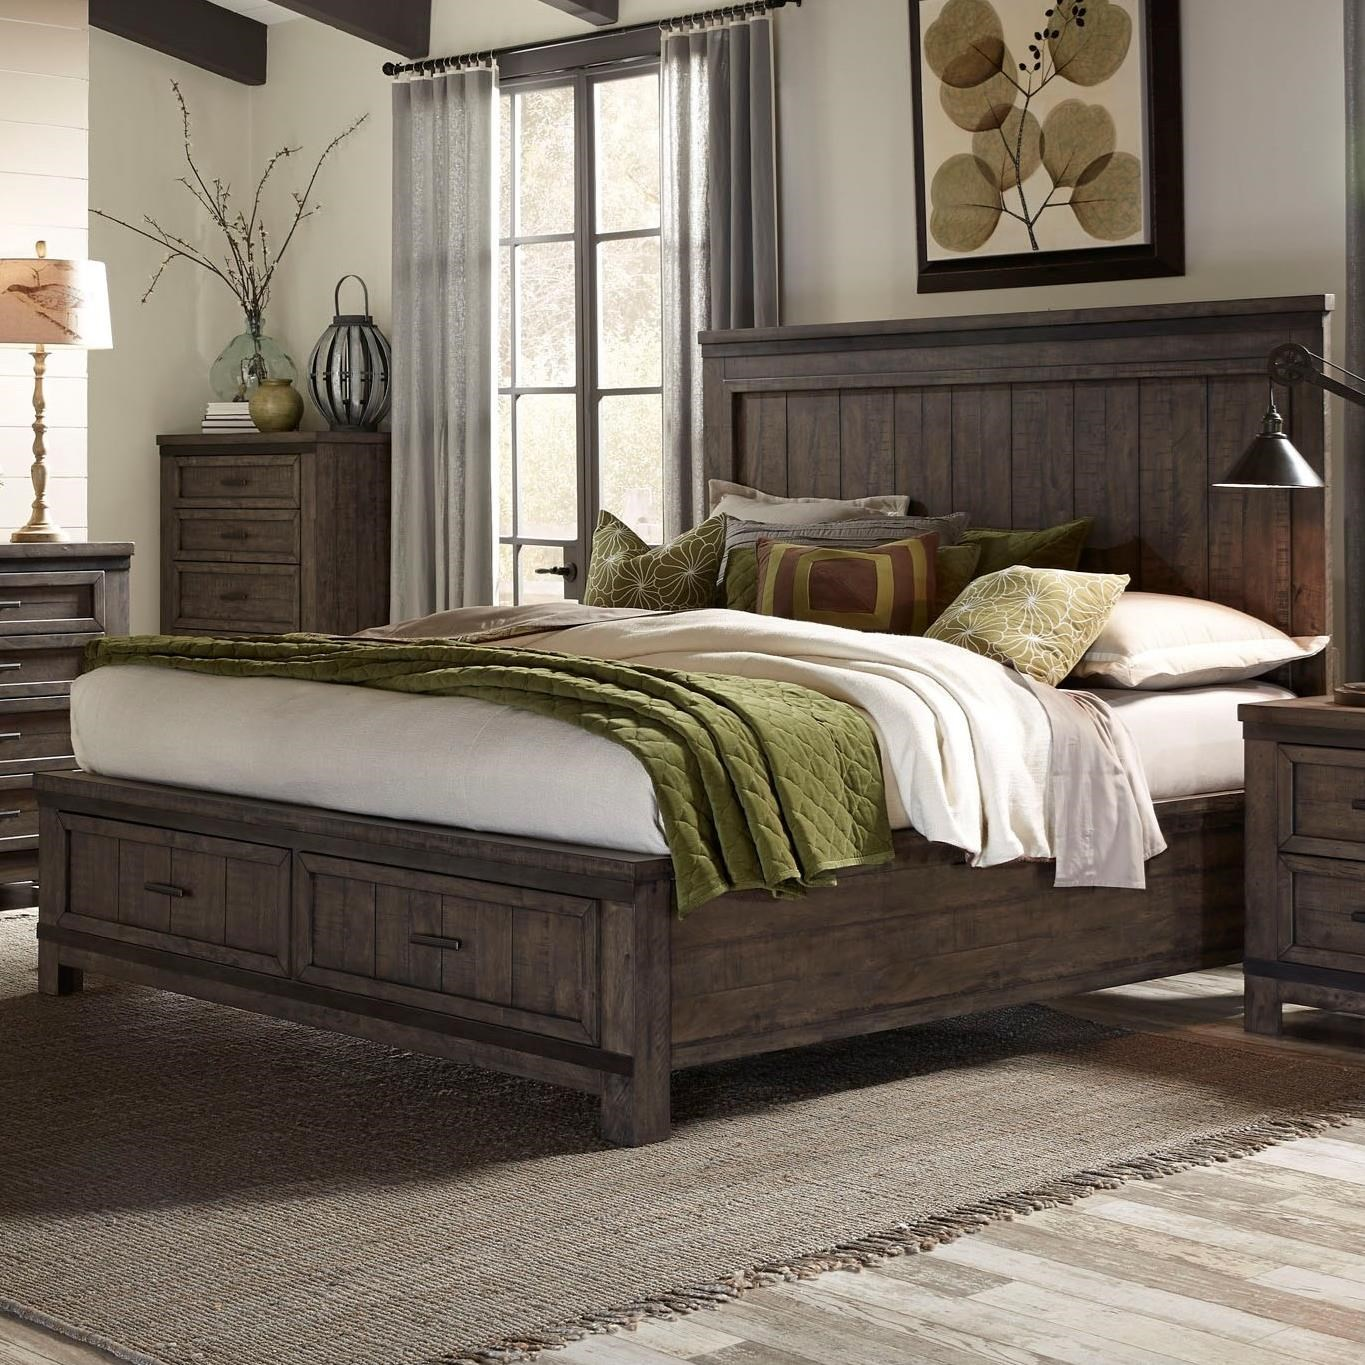 Thornwood Hills King Storage Bed by Liberty Furniture at Northeast Factory Direct